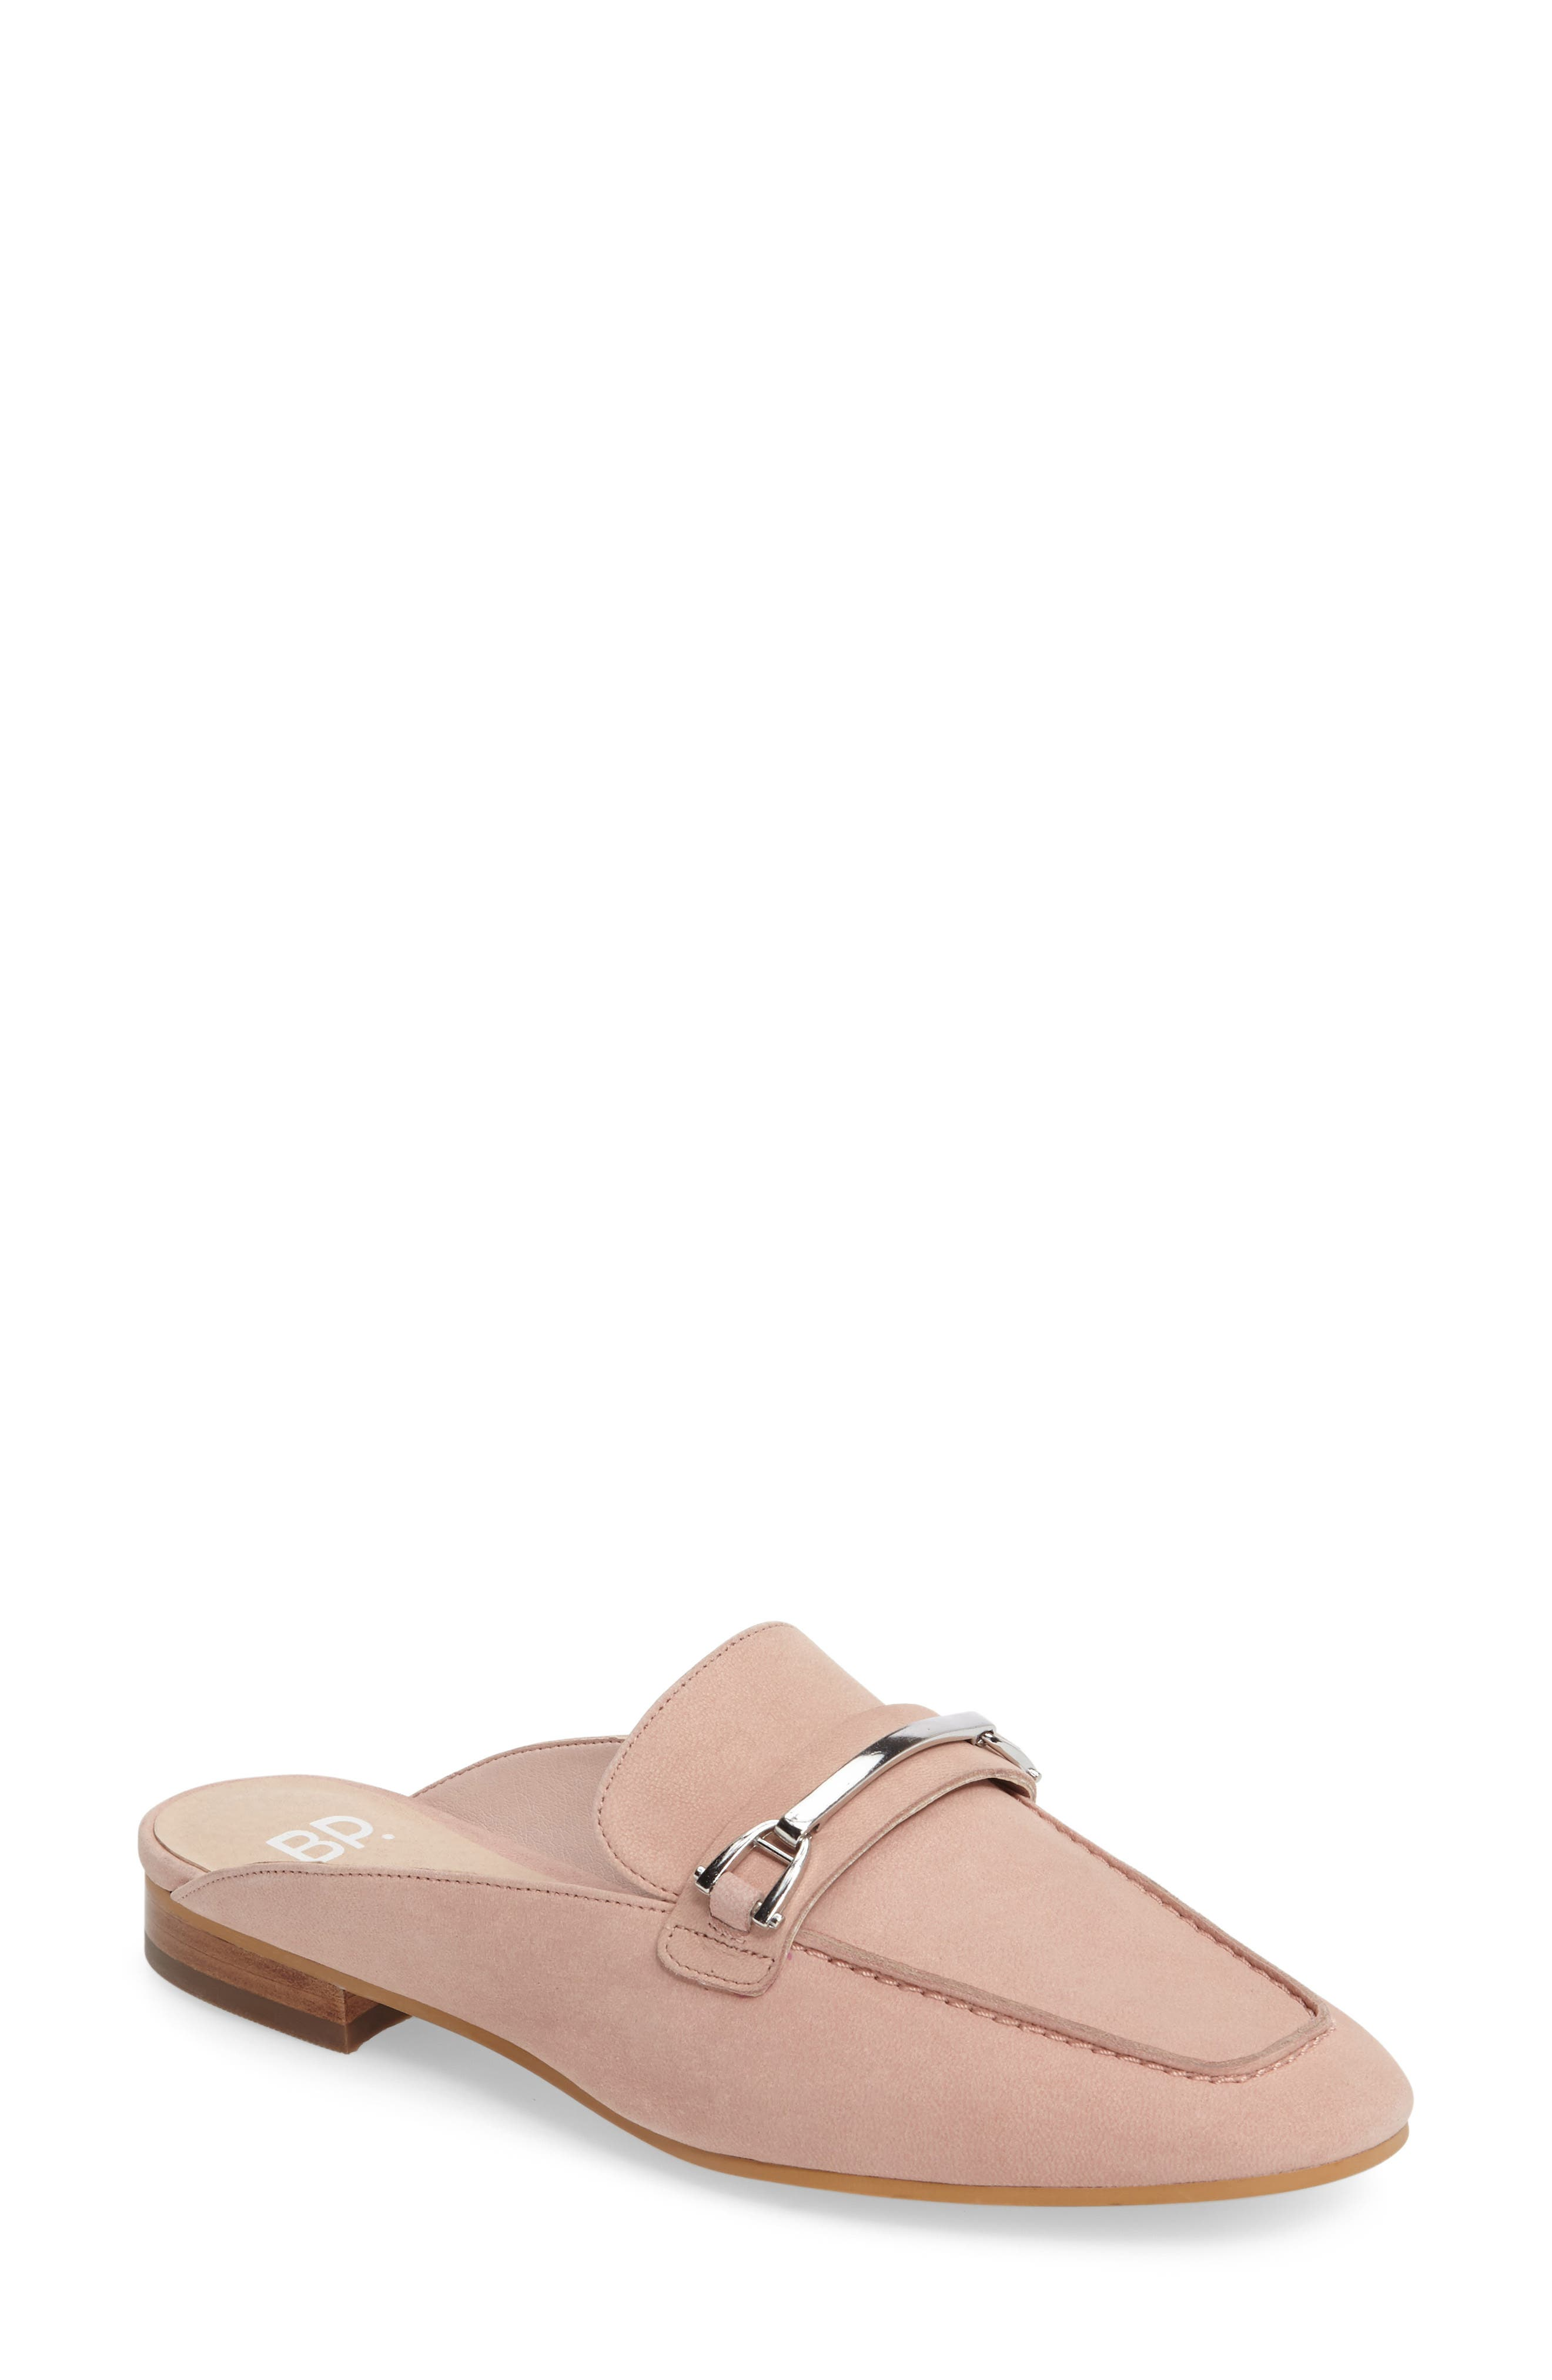 Main Image - BP. Milo Loafer Mule (Women)